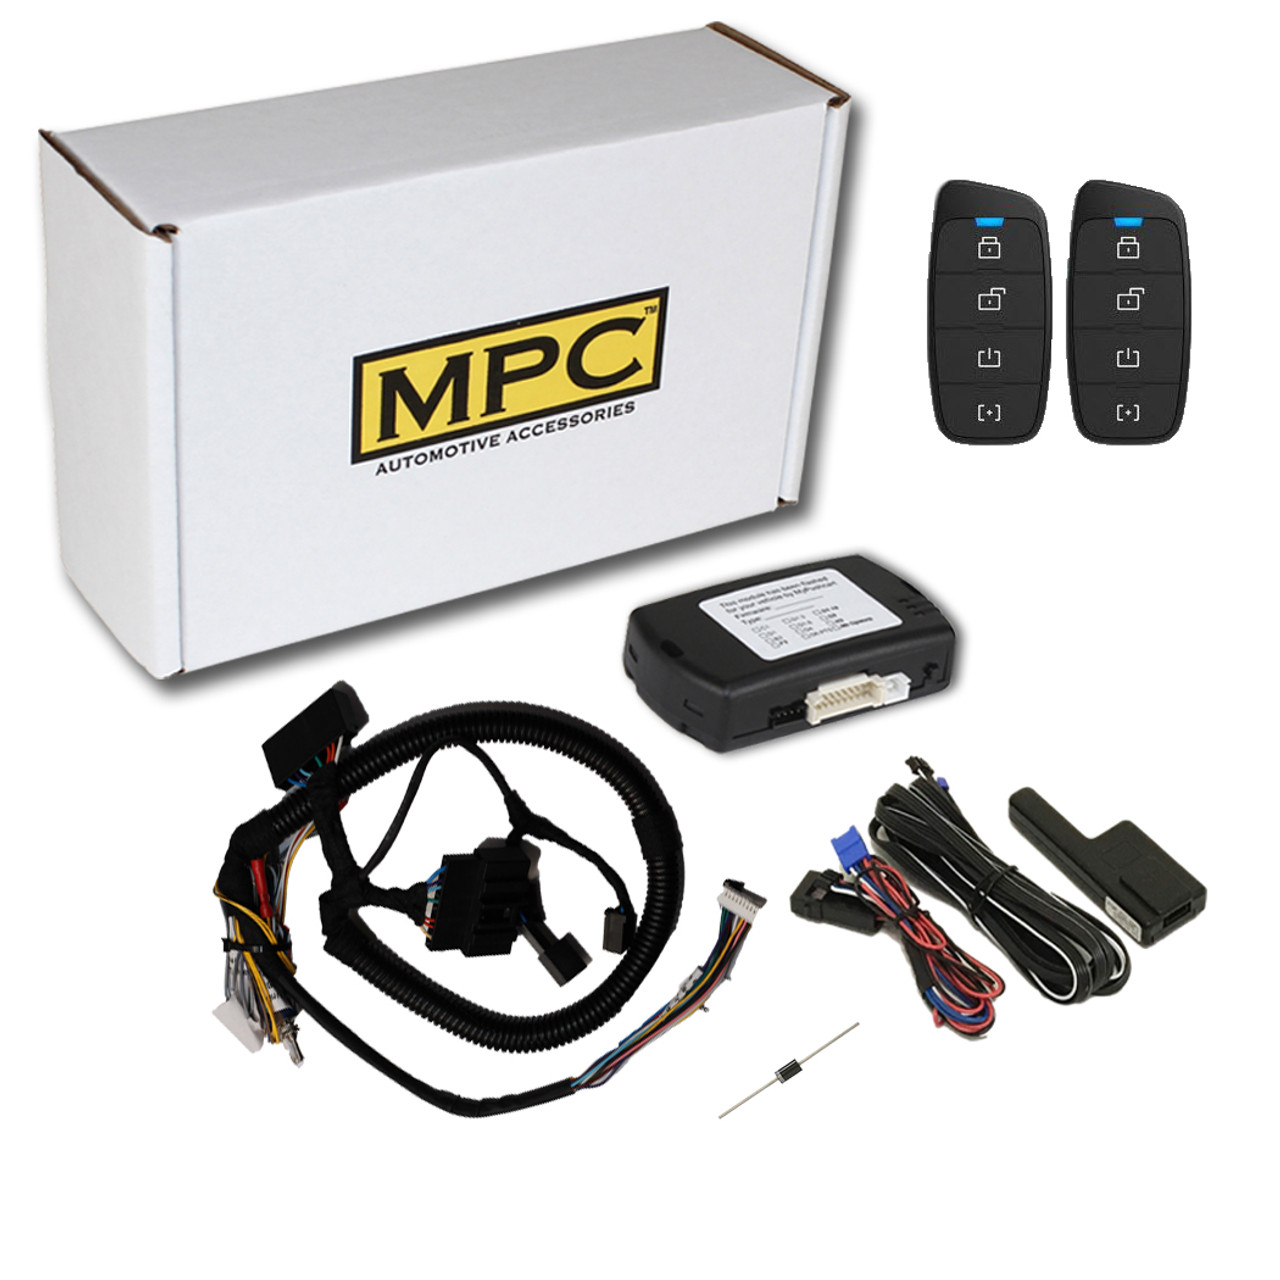 MPC Ford F-350 Super Duty 2011-2016 4-Button Extended Range Remote Starter